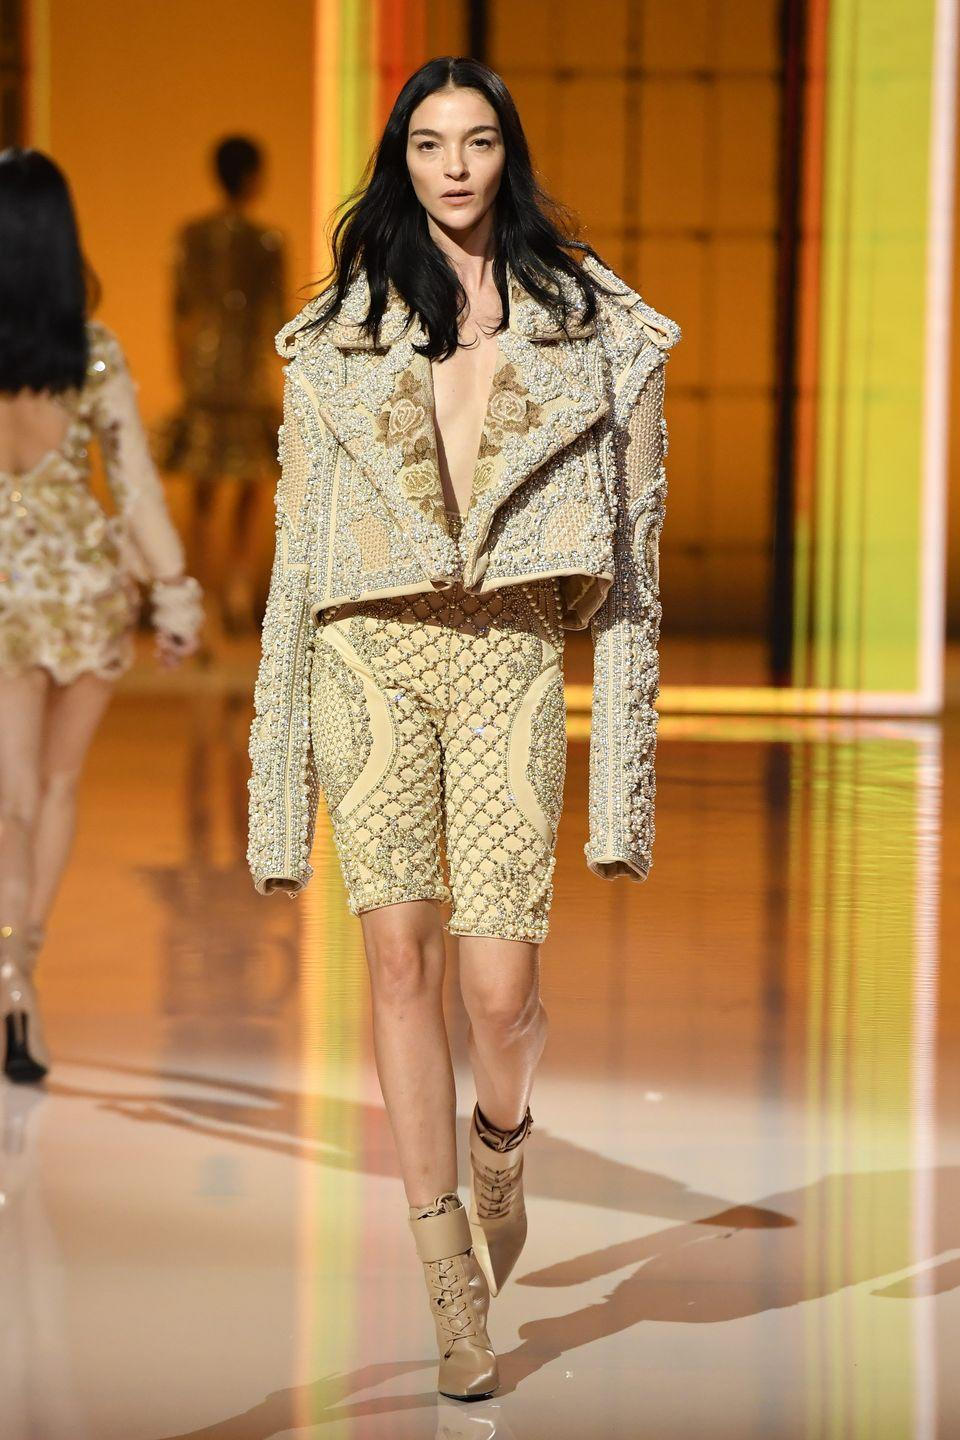 """<p>Last night, Olivier Rousteing celebrated 10 years at Balmain, presenting an anniversary collection, which featured new takes on some of his most famous pieces, from crystallised corsets to military-inspired jackets. The spectacle was supermodel-studded, and filled with emotional moments, including a recording from Beyoncé, which opened the show. </p><p>""""Over the next 10 years, I pledge to continue to push for more inclusion, more democracy and more openness,"""" Rousteing said. """"Here's to the next decade of sharing our joy-filled signature mix of fashion and music with more and more of those who wish to enter into the Balmain universe.""""</p><p><a href=""""https://www.harpersbazaar.com/uk/fashion/fashion-news/a37800643/balmain-beyonce-naomi-doja-kat/"""" rel=""""nofollow noopener"""" target=""""_blank"""" data-ylk=""""slk:Read, and see, more from the event here."""" class=""""link rapid-noclick-resp"""">Read, and see, more from the event here.</a></p>"""